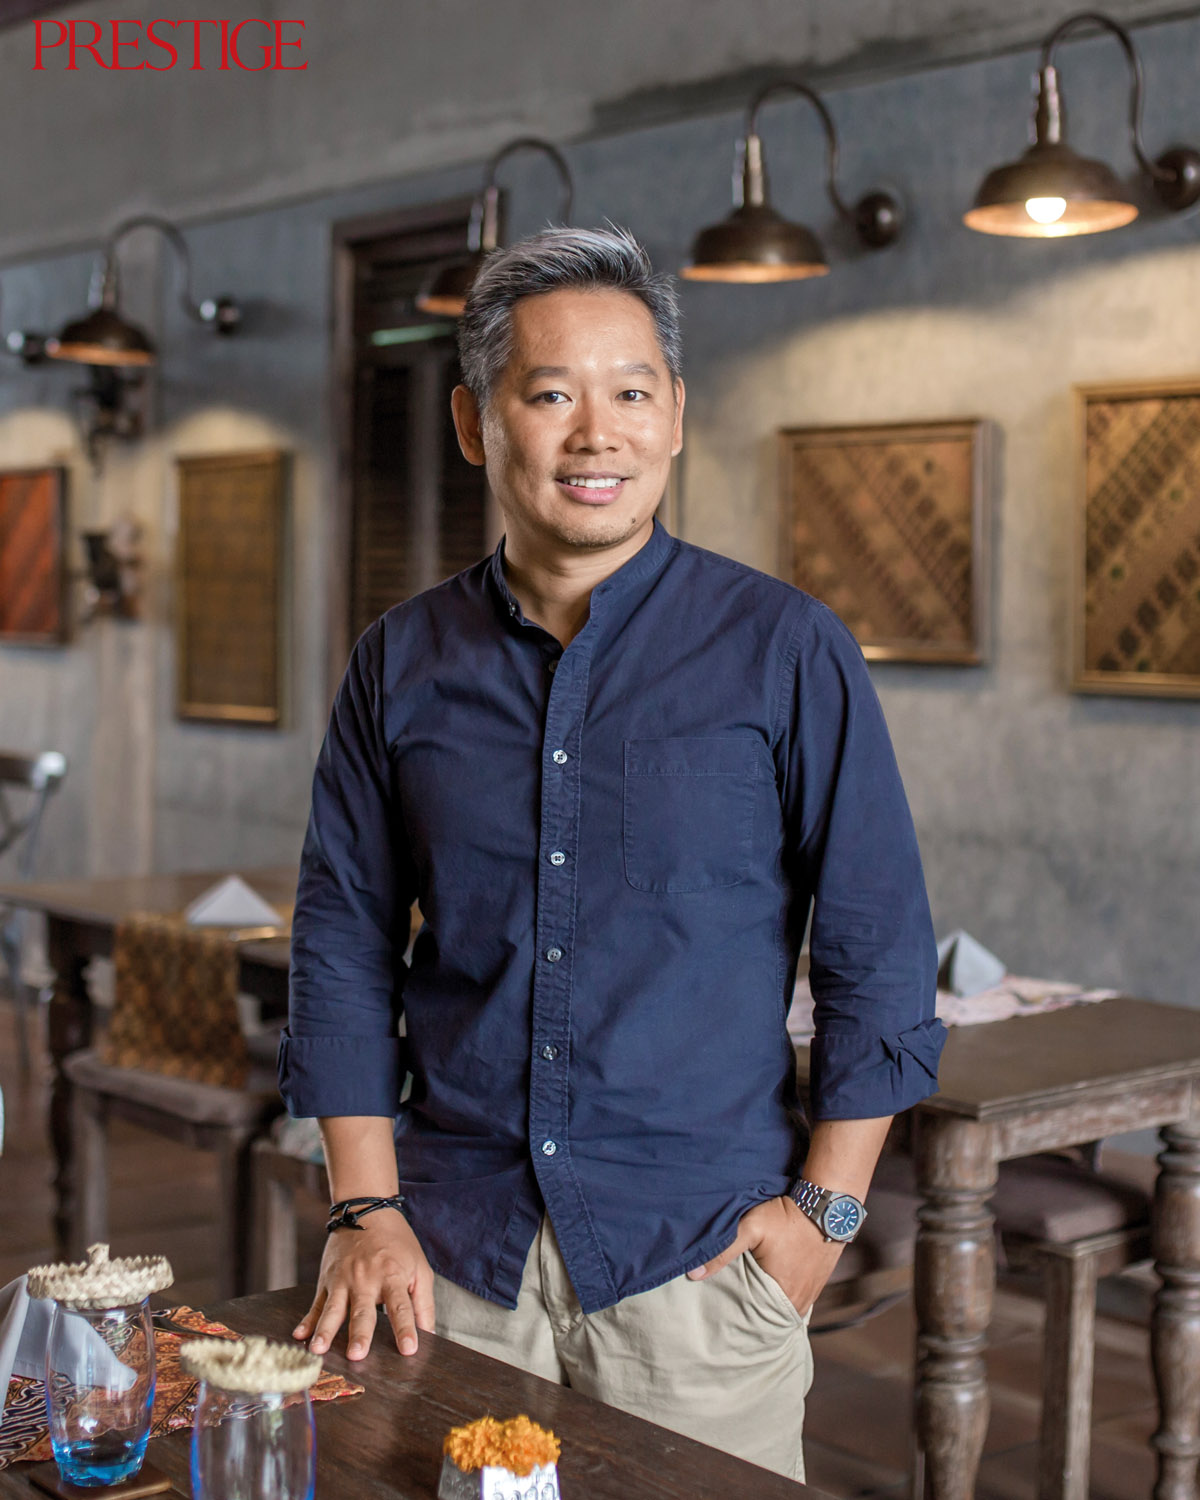 JIMMY GUNAWAN: BUILDING BUSINESS WITH A HEART